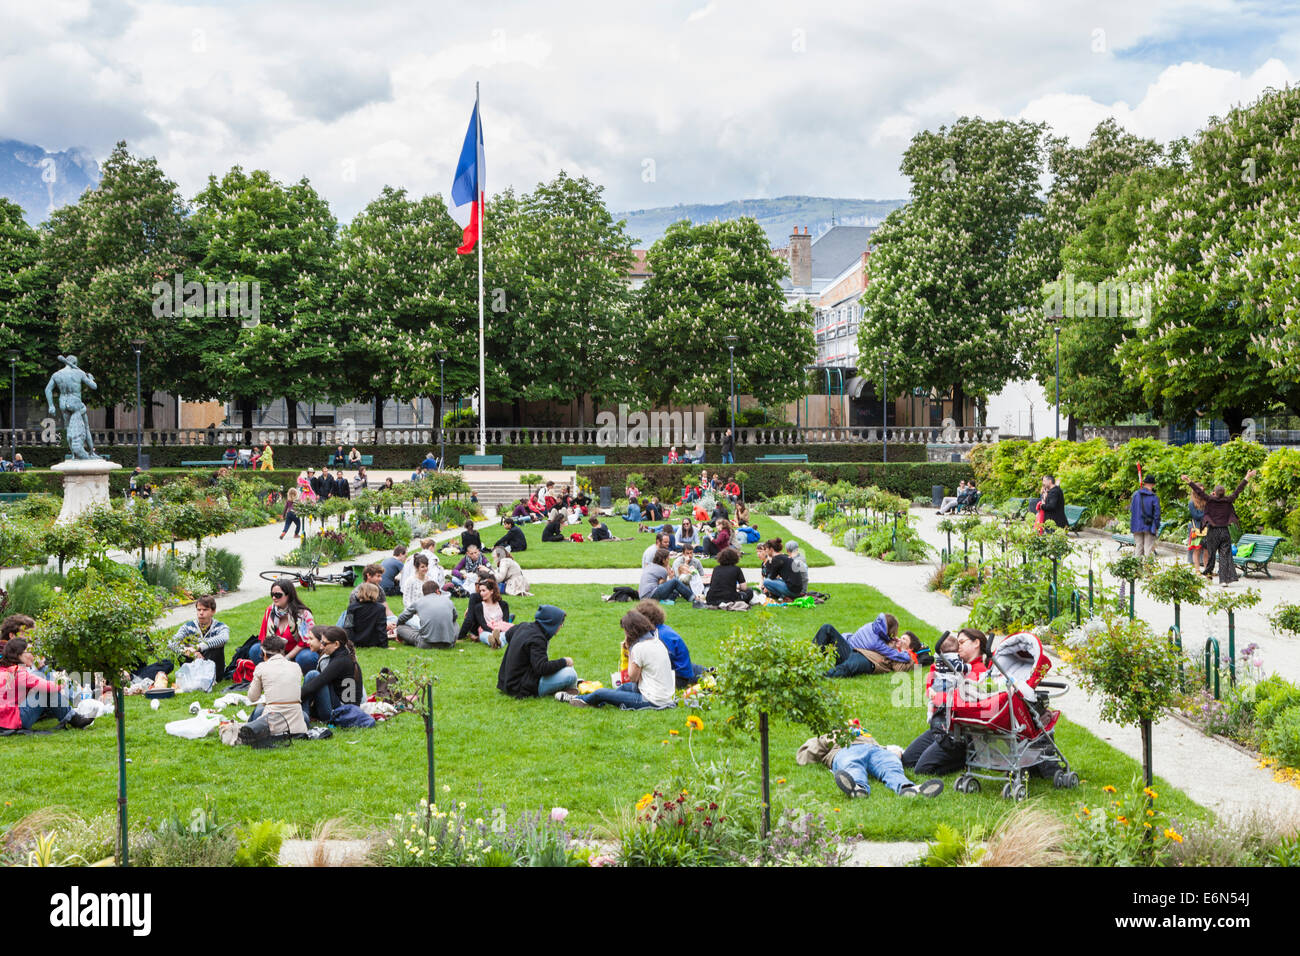 People sitting out in the public parks, Grenoble, Rohone-Alpes, France - Stock Image